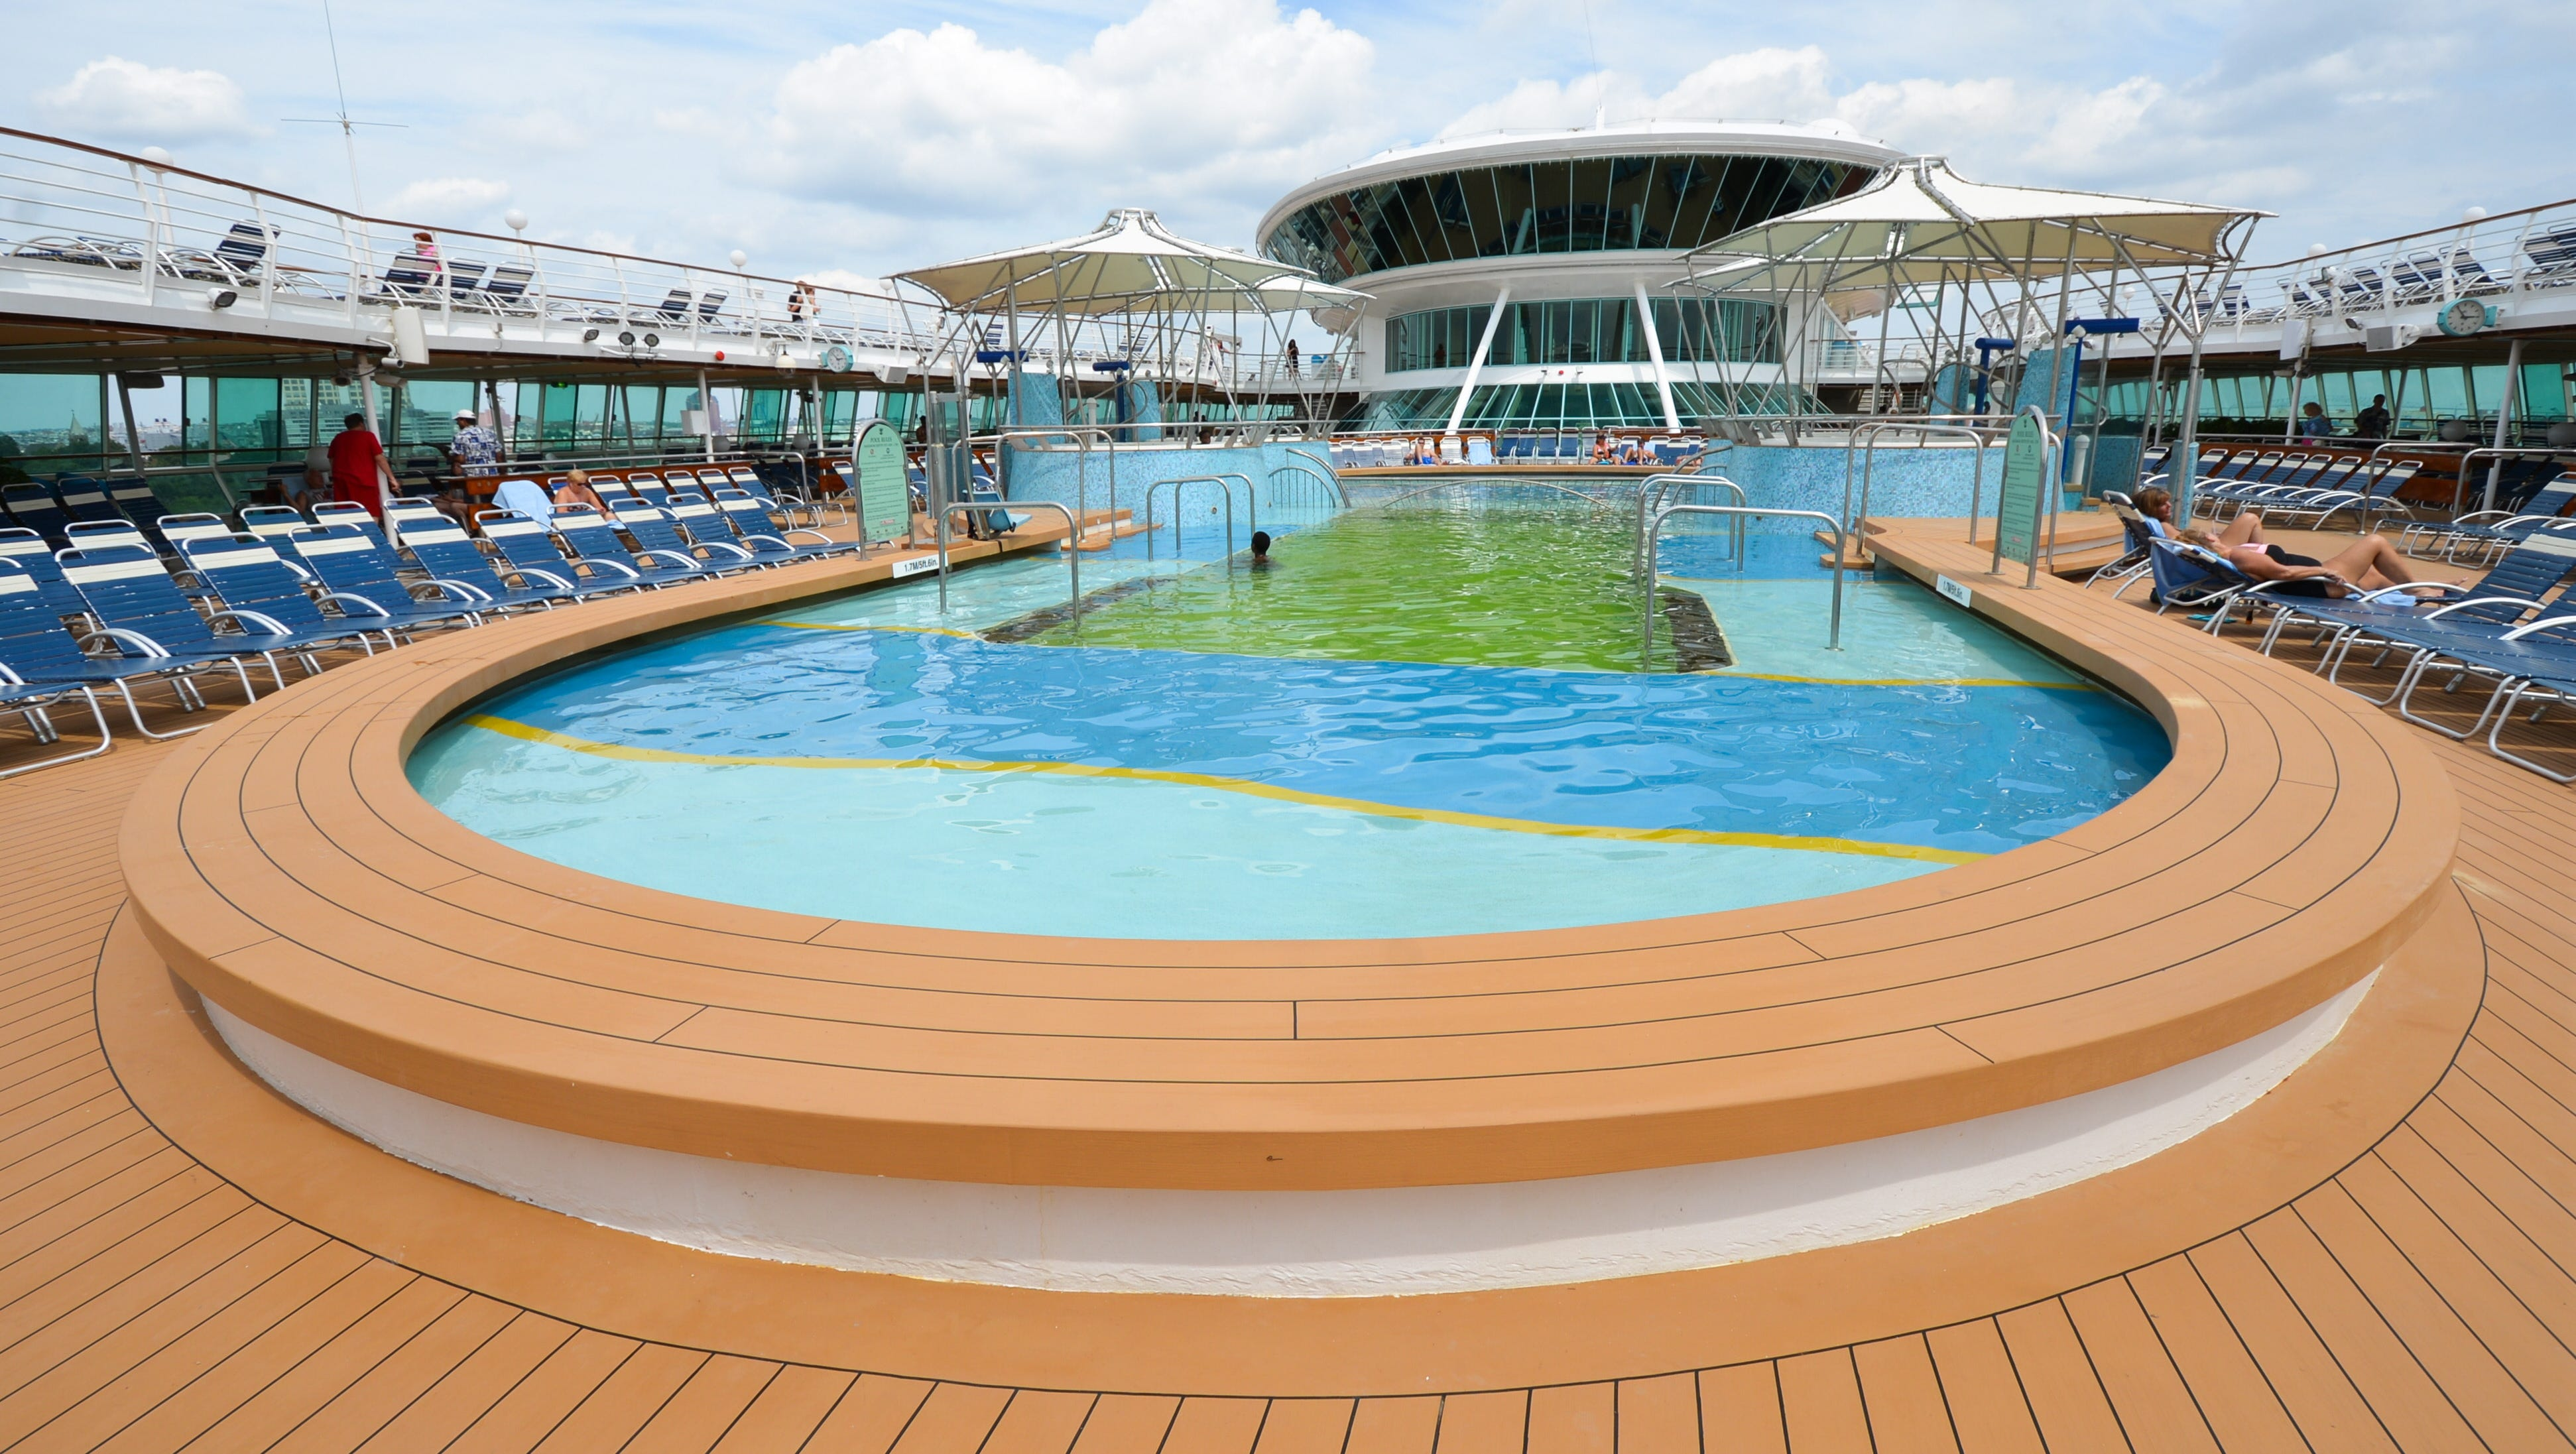 In addition to hot tubs, Grandeur of the Seas' main pool is surrounded by a shallow wading area.